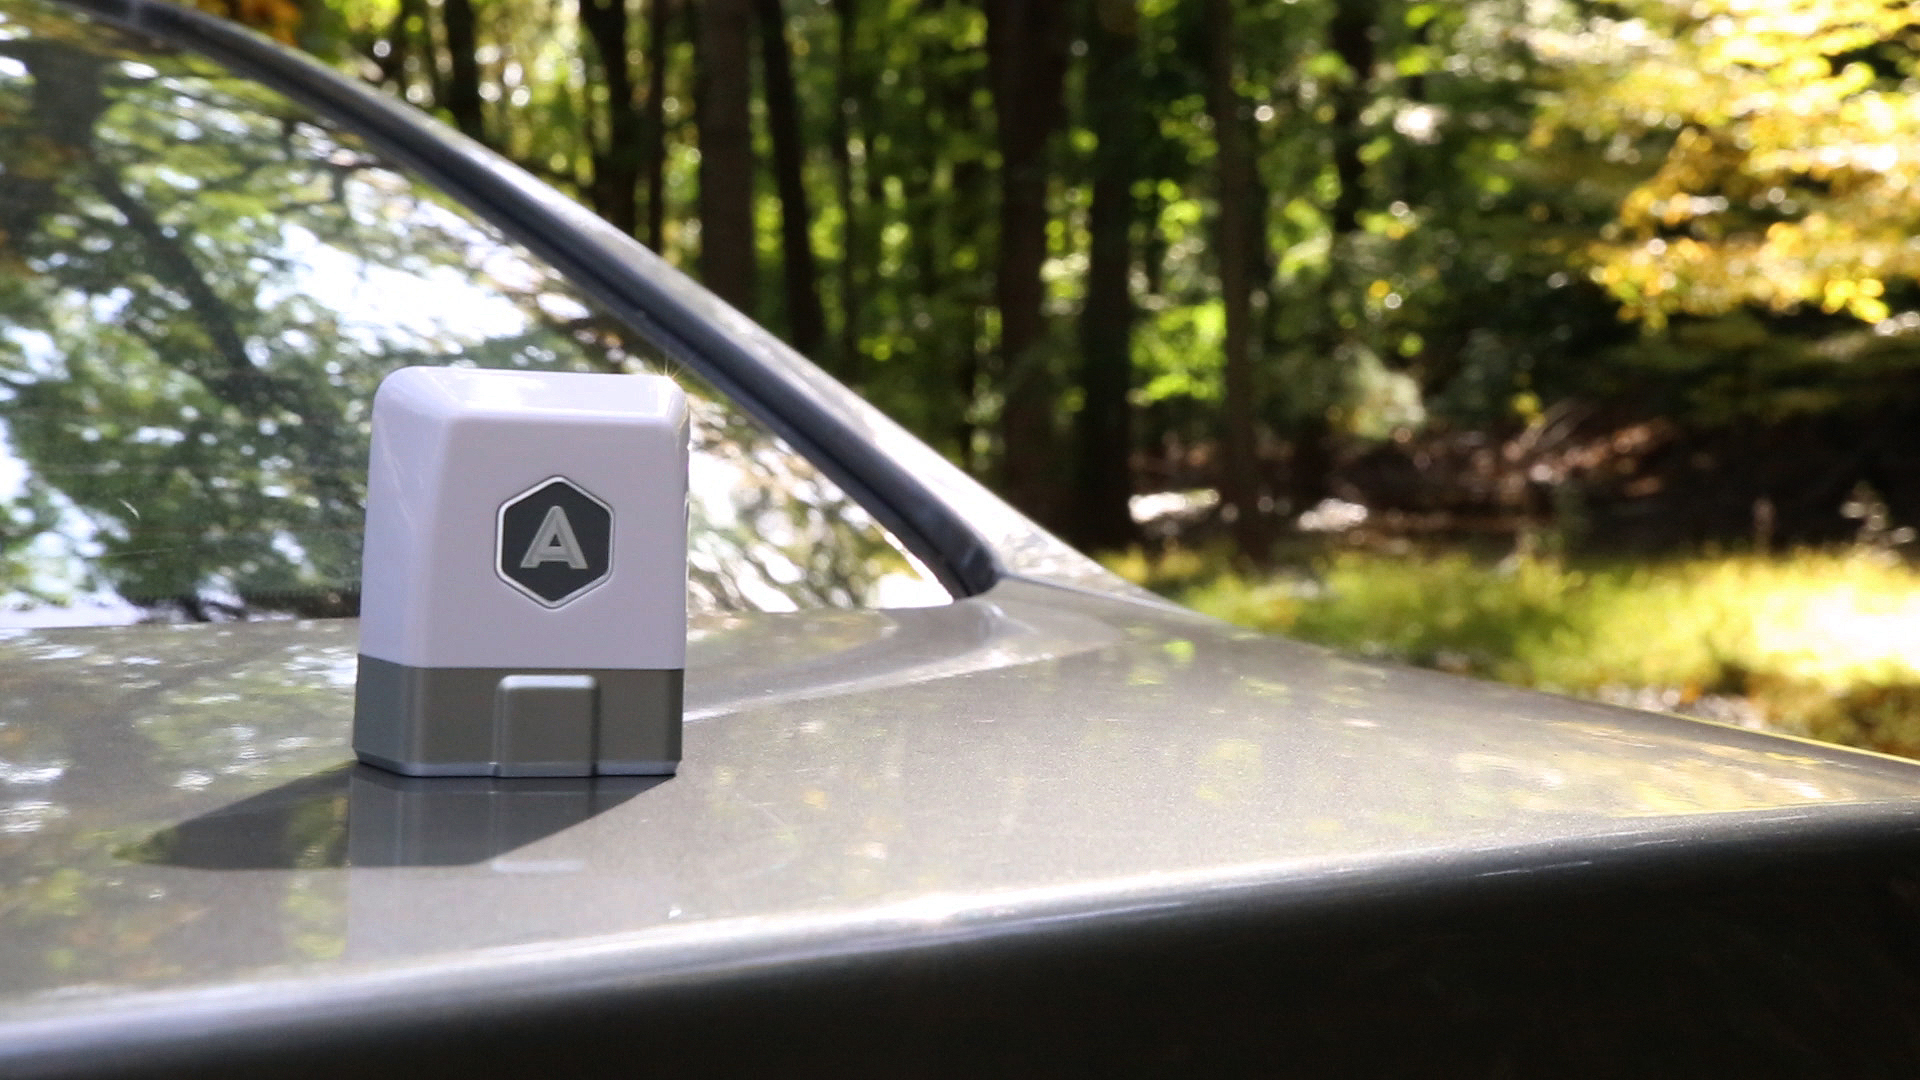 Take a Drive with the Automatic Link Dongle